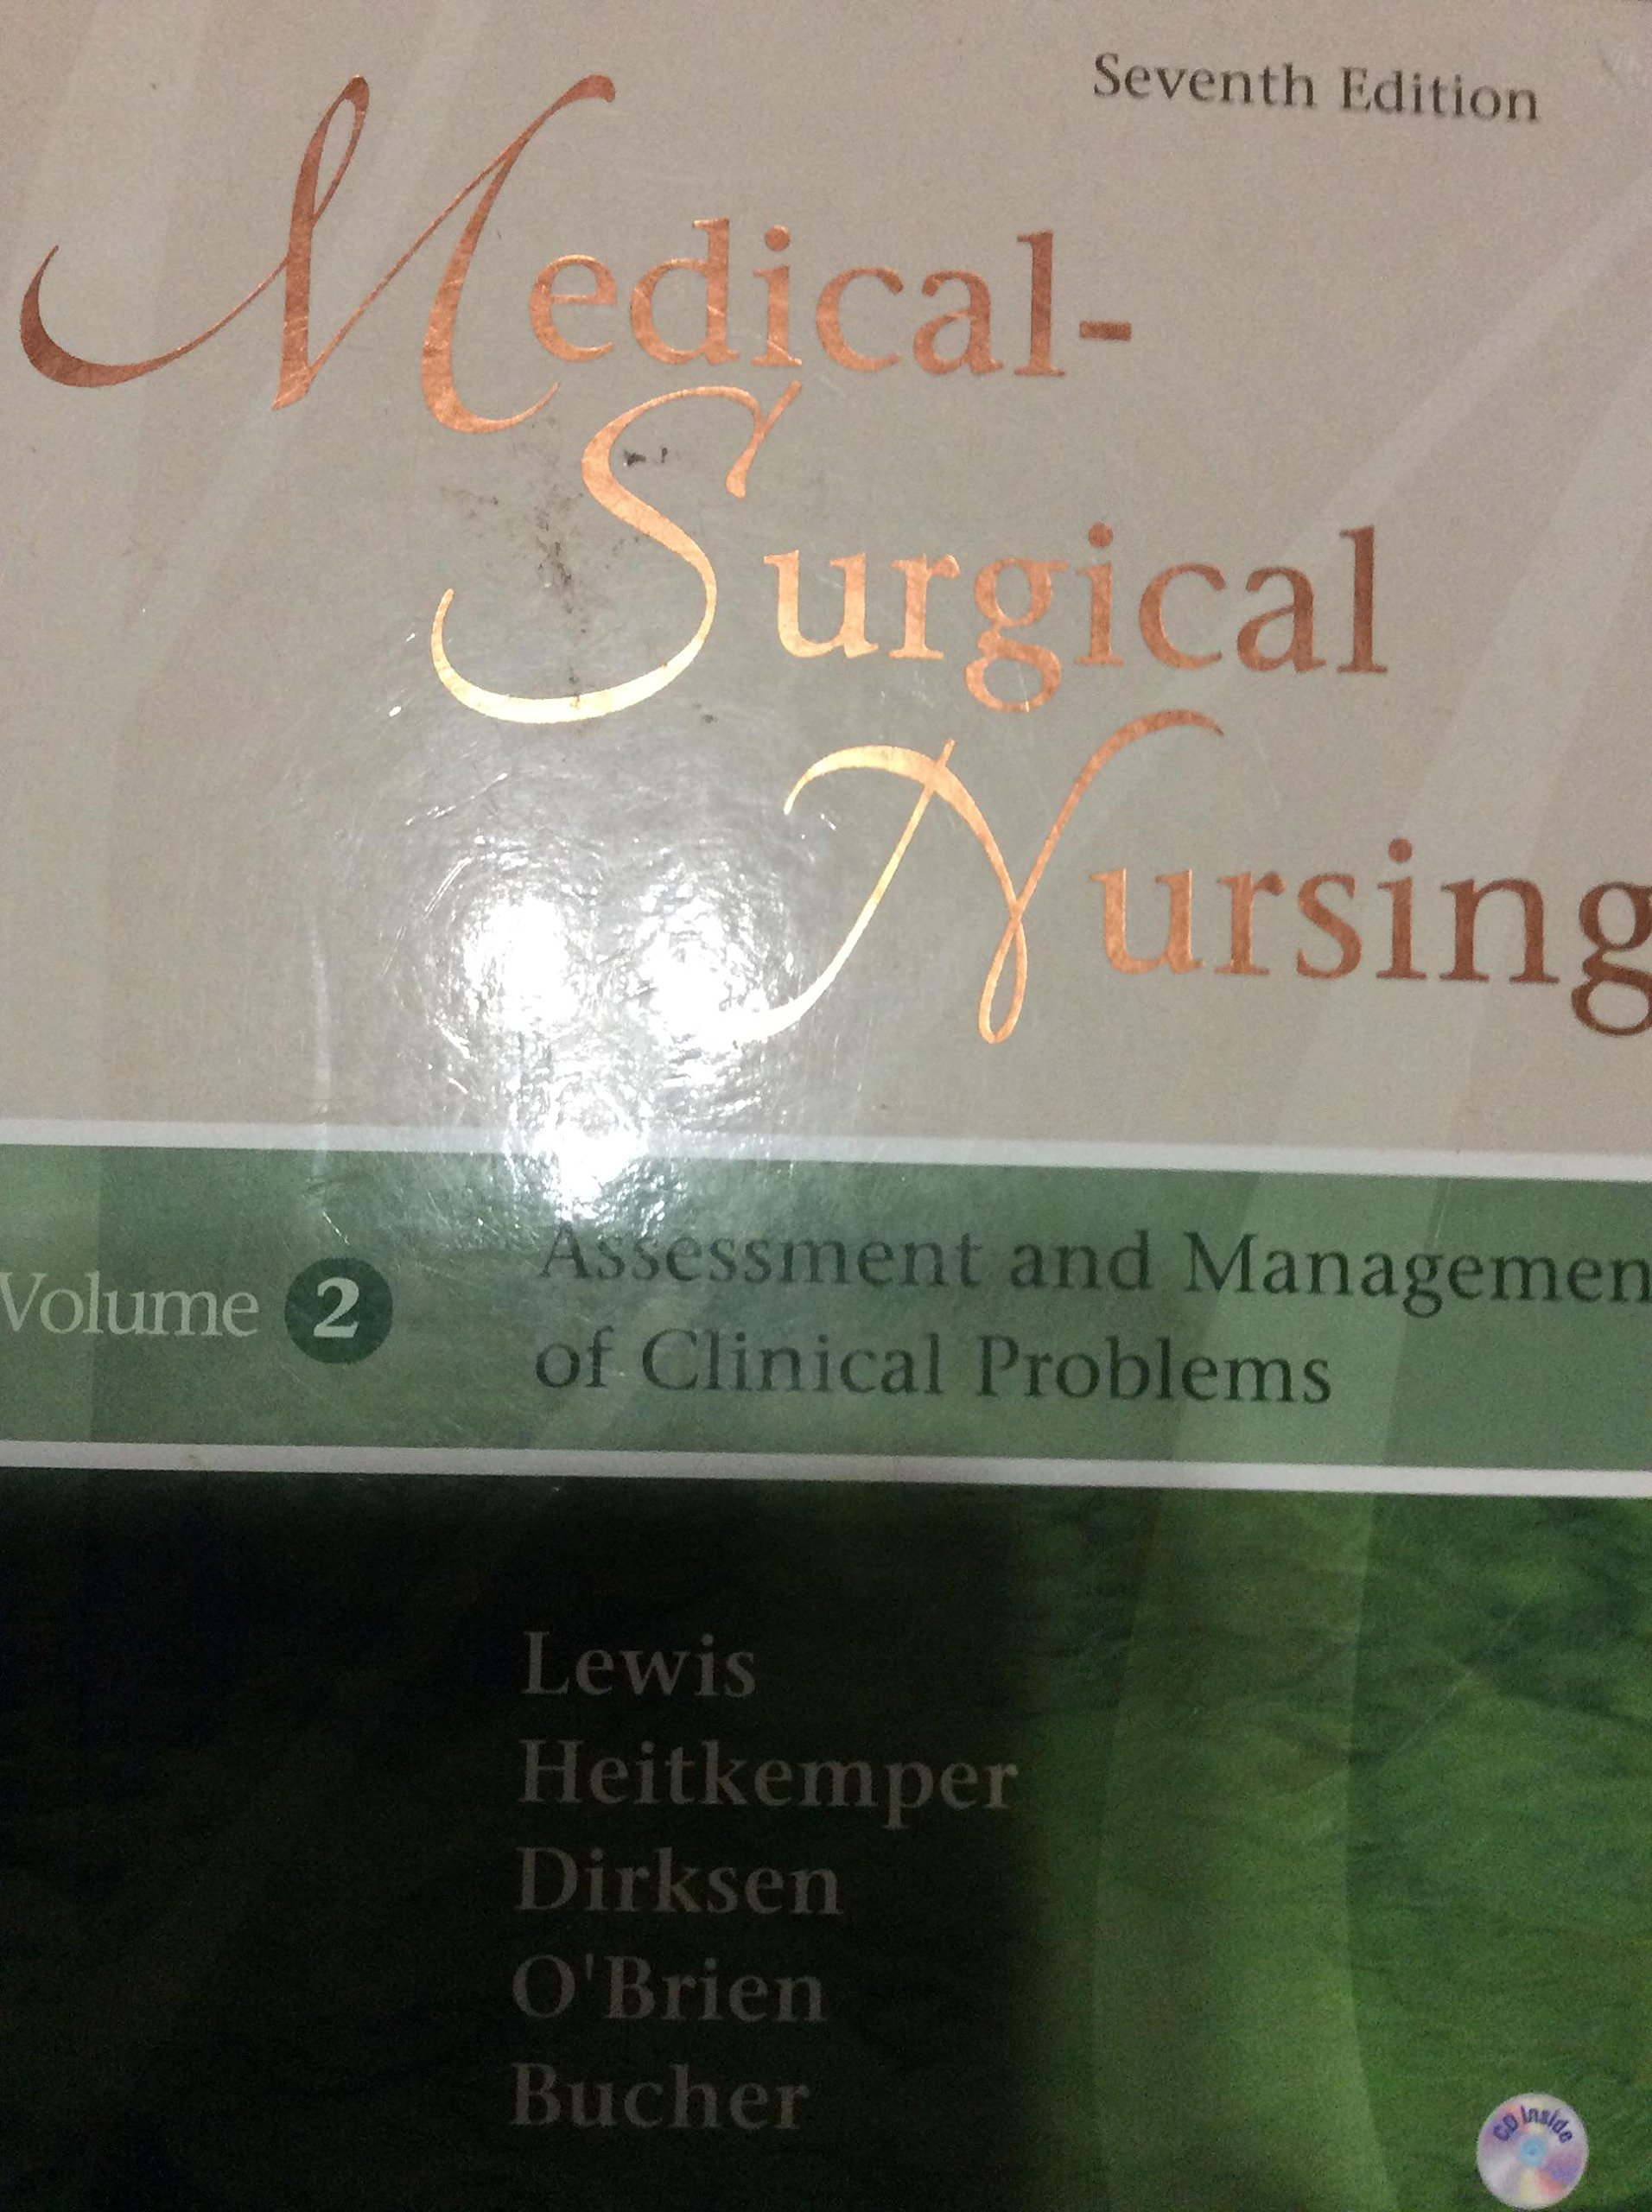 Download Medical- Surgical Nursing Assessment and Management of Clinical Problems (Volume 1. 7th Edition) pdf epub